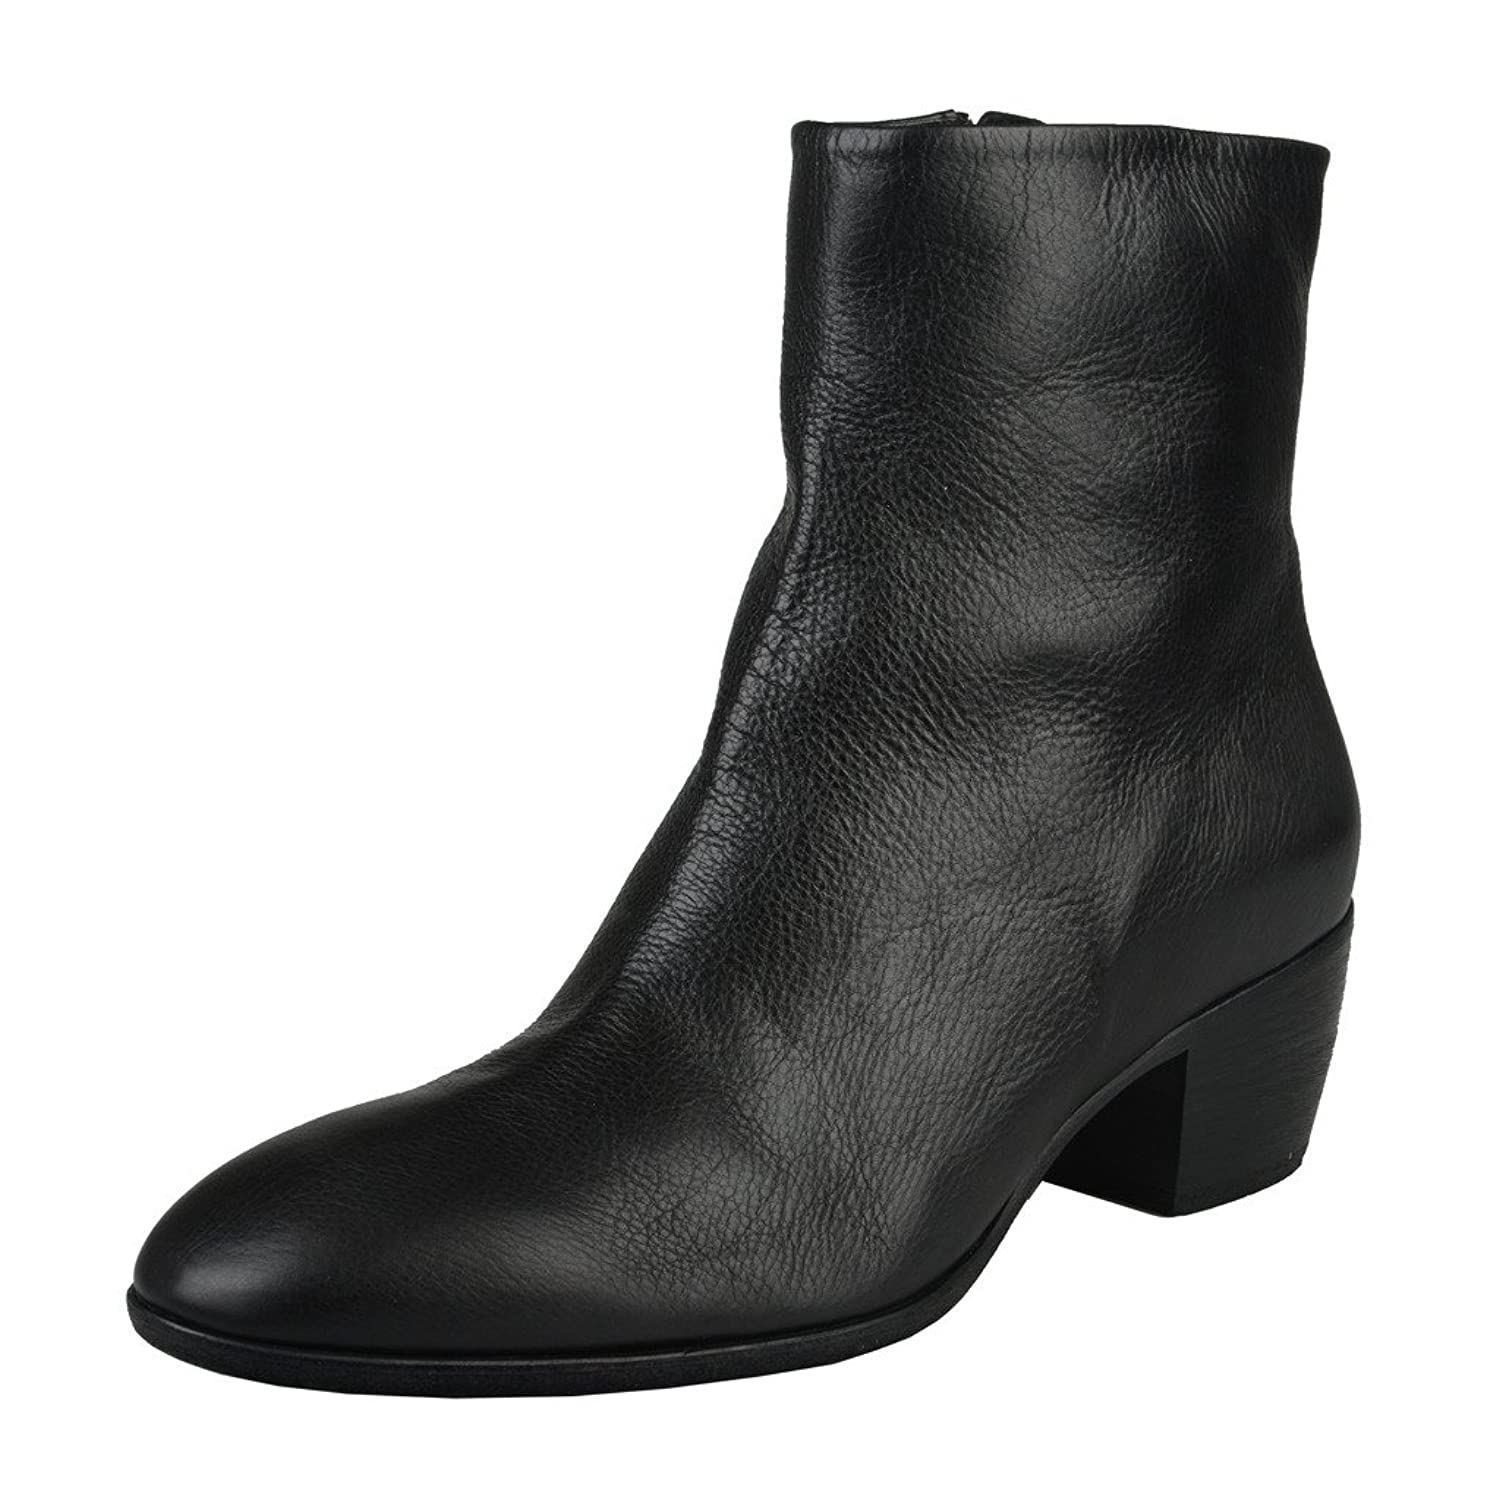 Giuseppe Zanotti Homme Men's Black Leather Ankle Boots Shoes US 11 IT 44;